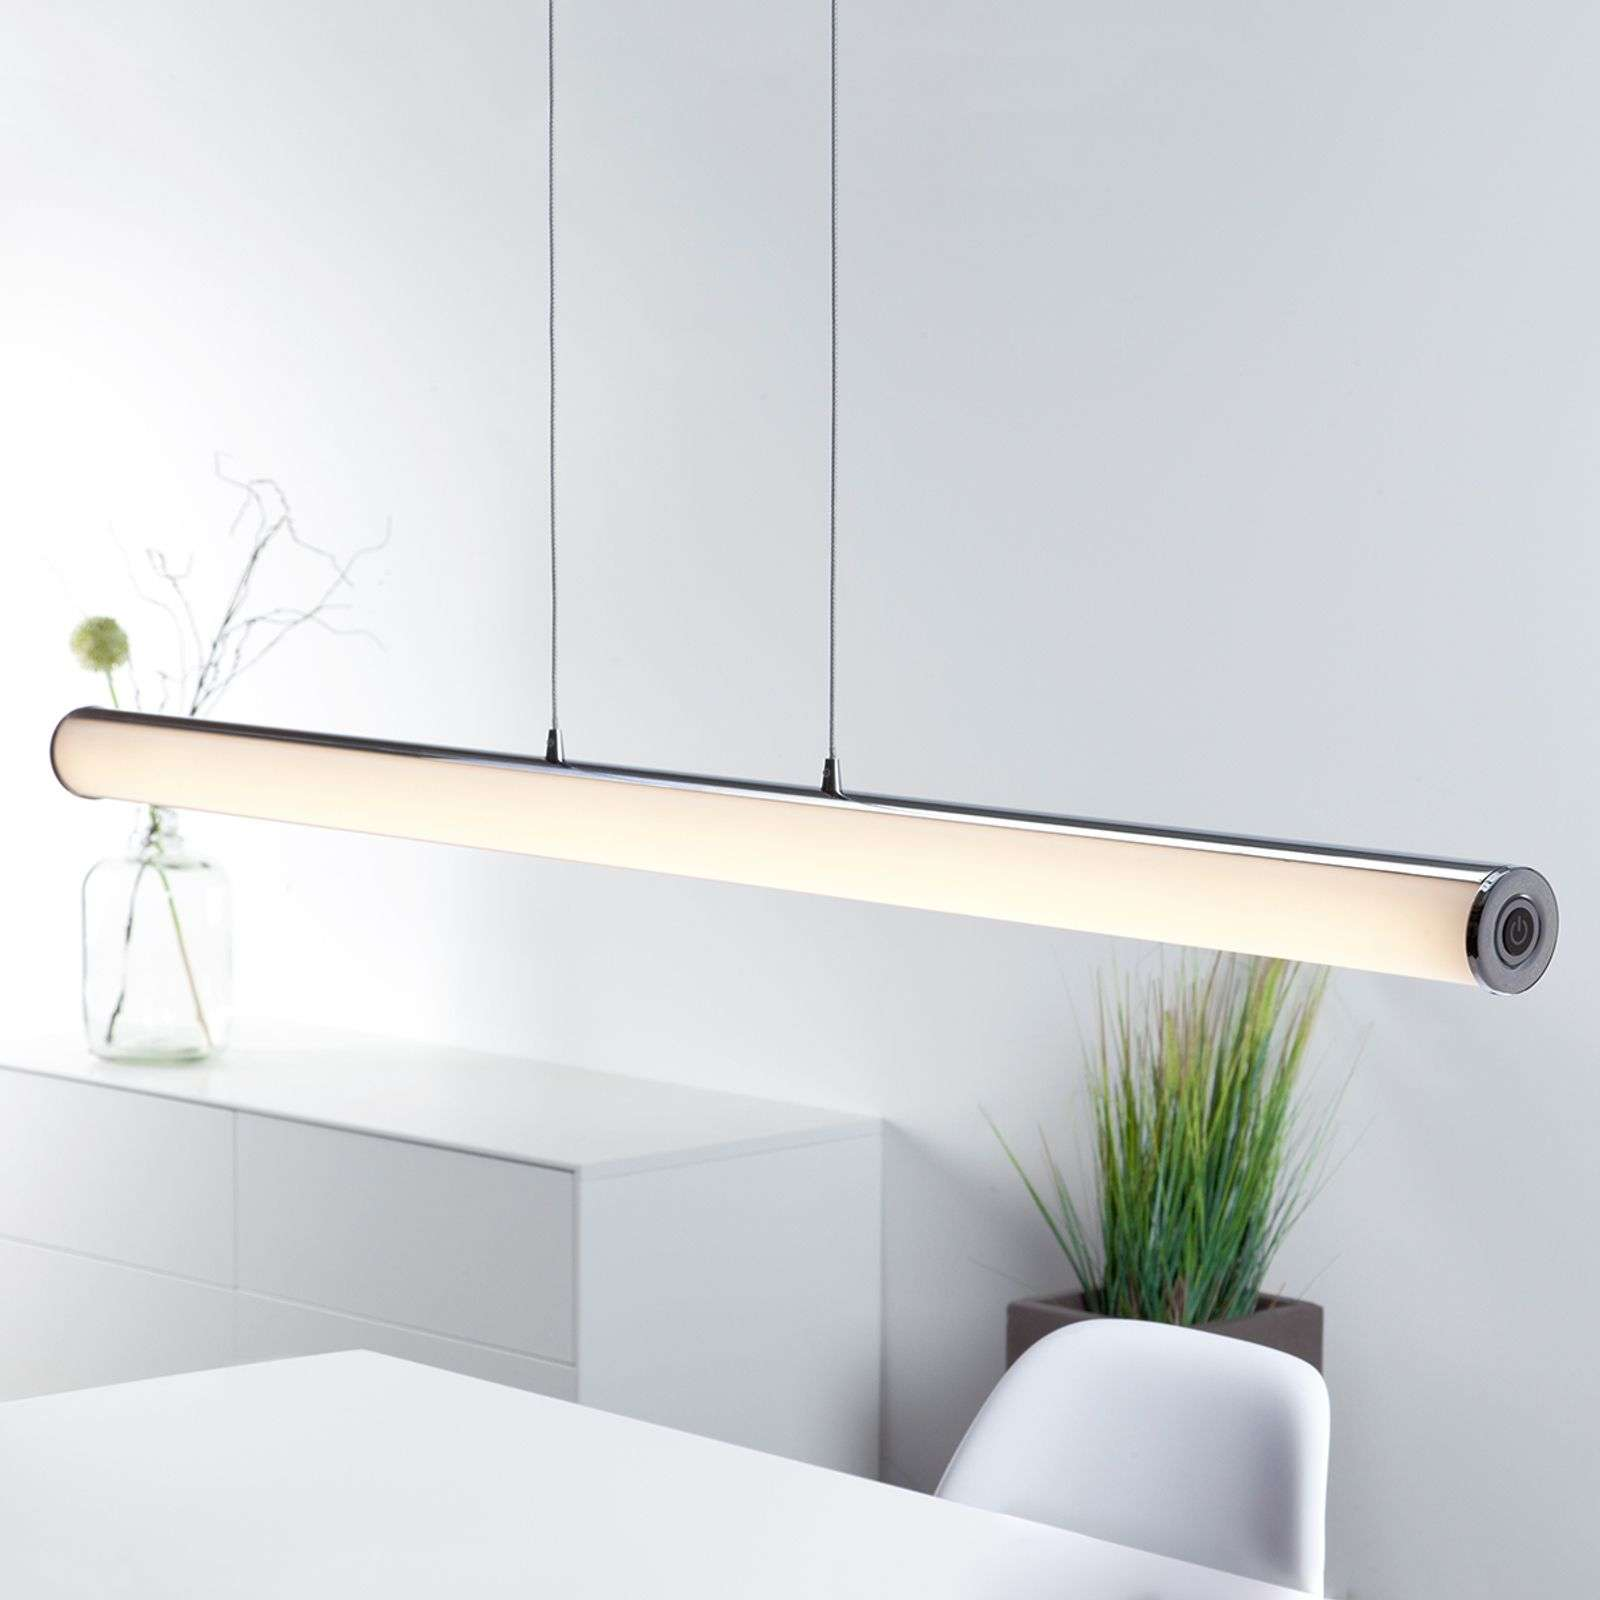 Suspension LED Tube au design minimaliste